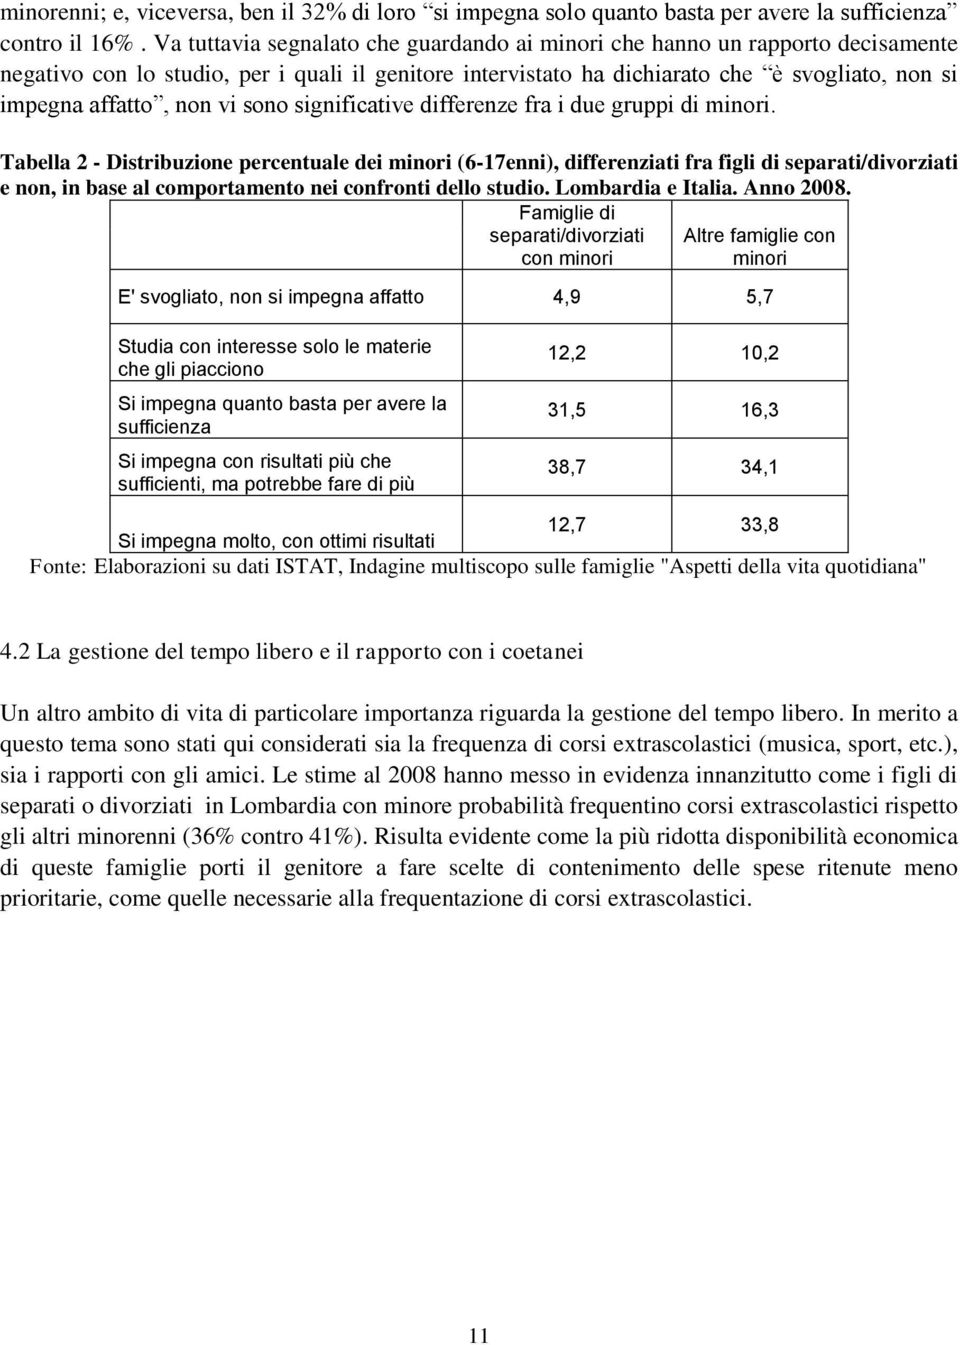 vi sono significative differenze fra i due gruppi di minori.